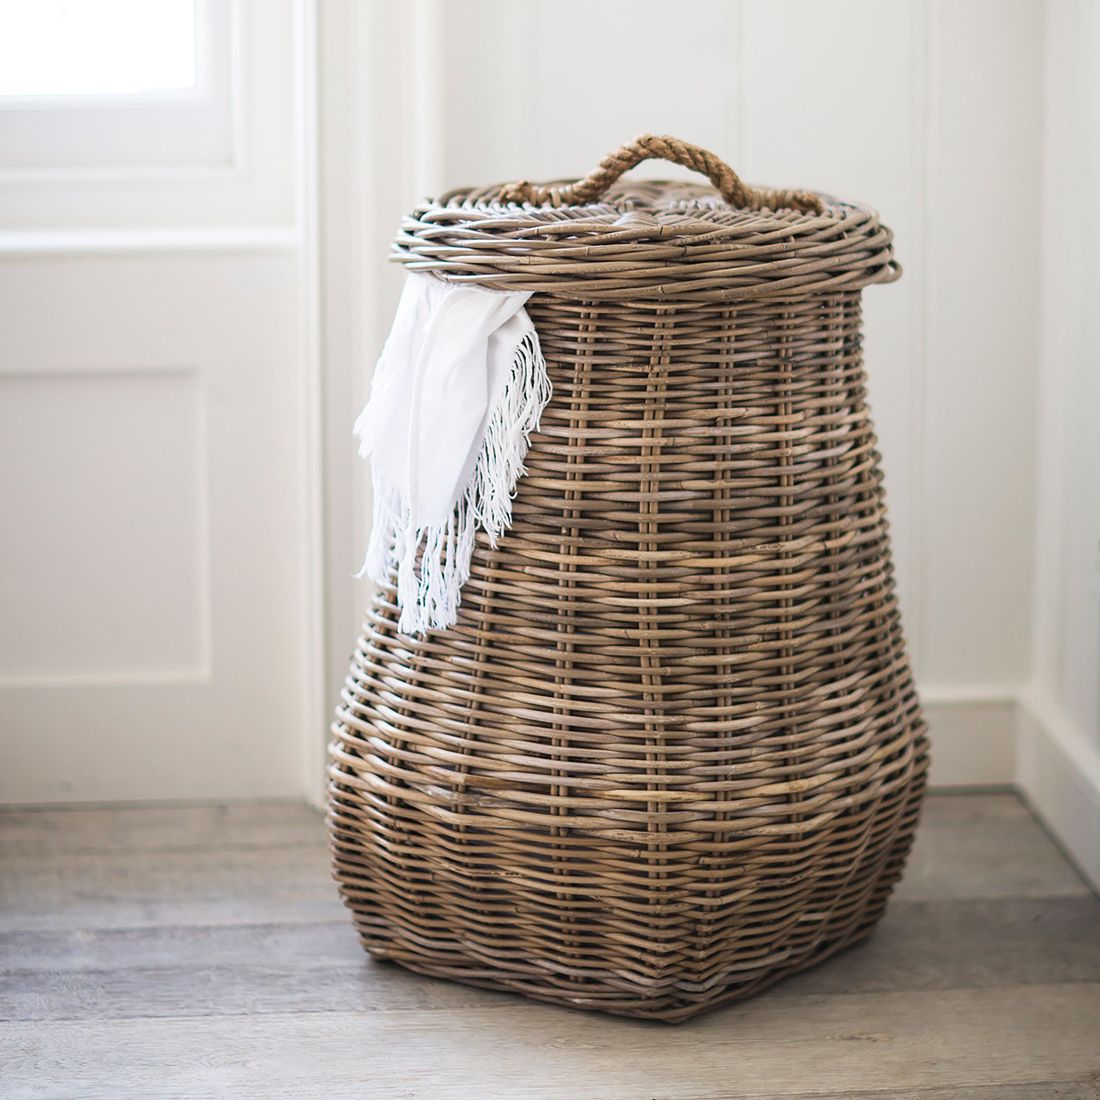 Connected Goods Flat Lid Woven Storage Laundry Basket 120